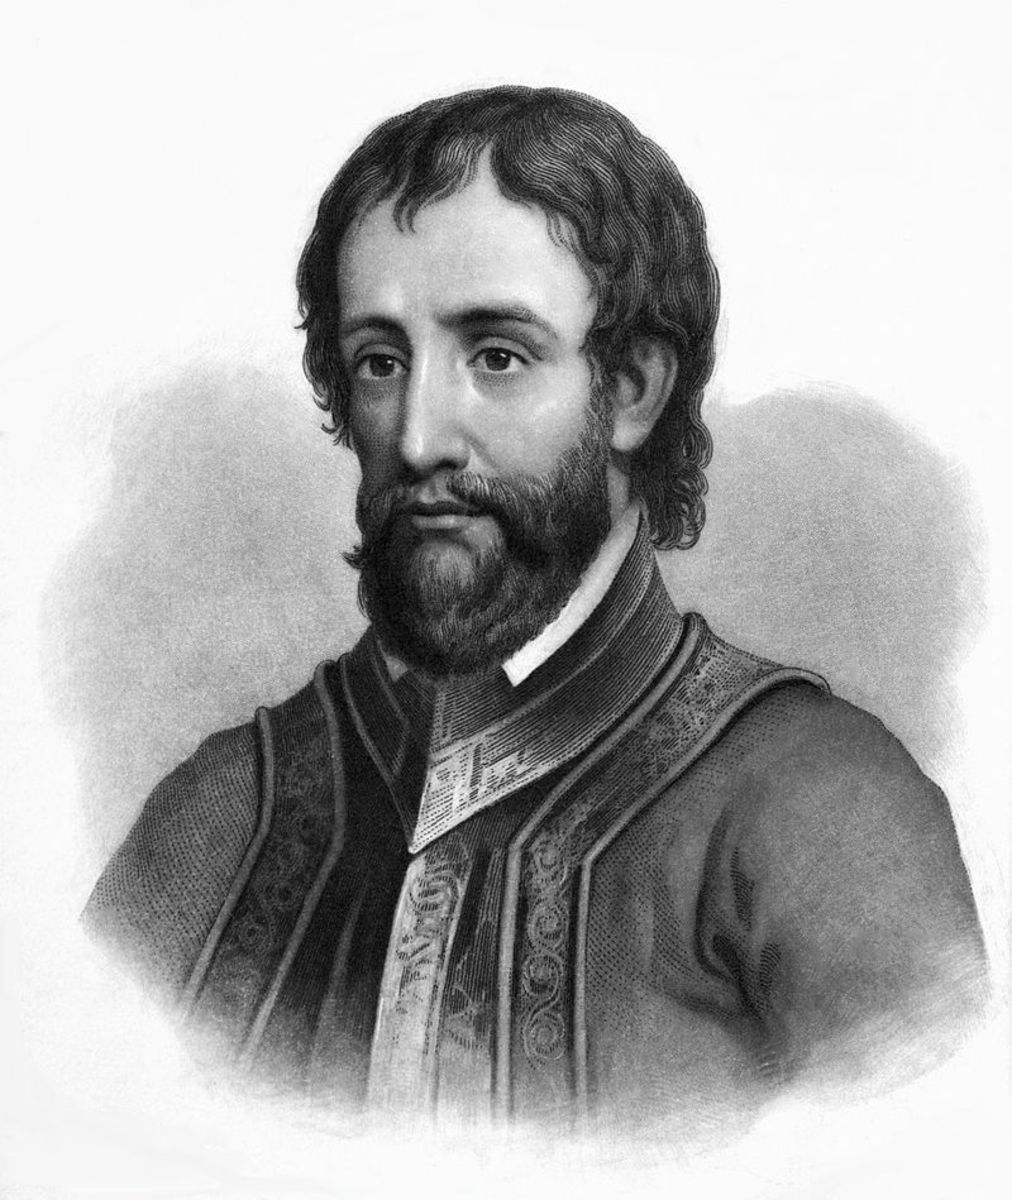 A young de Soto only in his teens would lead a band of conquistadors to riches in South America.